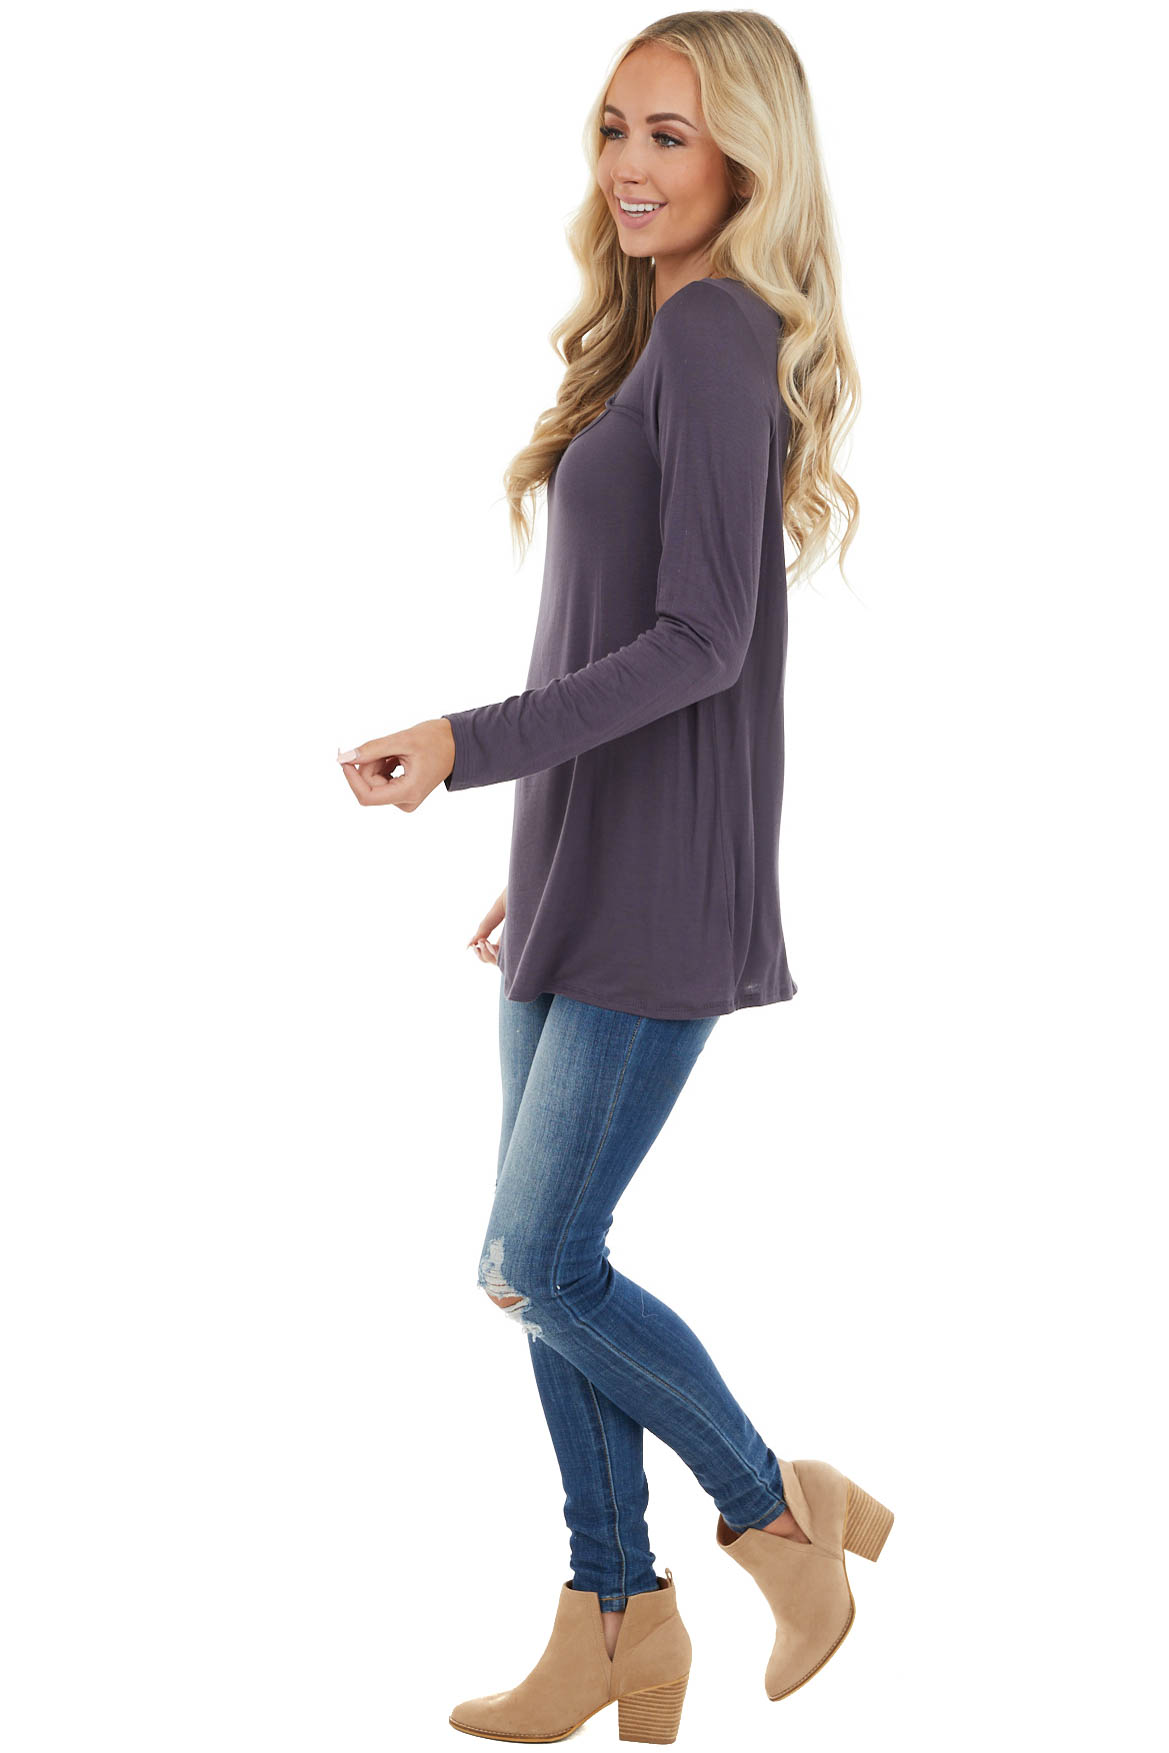 Dusty Blue Soft Stretchy Long Sleeve Top with Chest Cutout